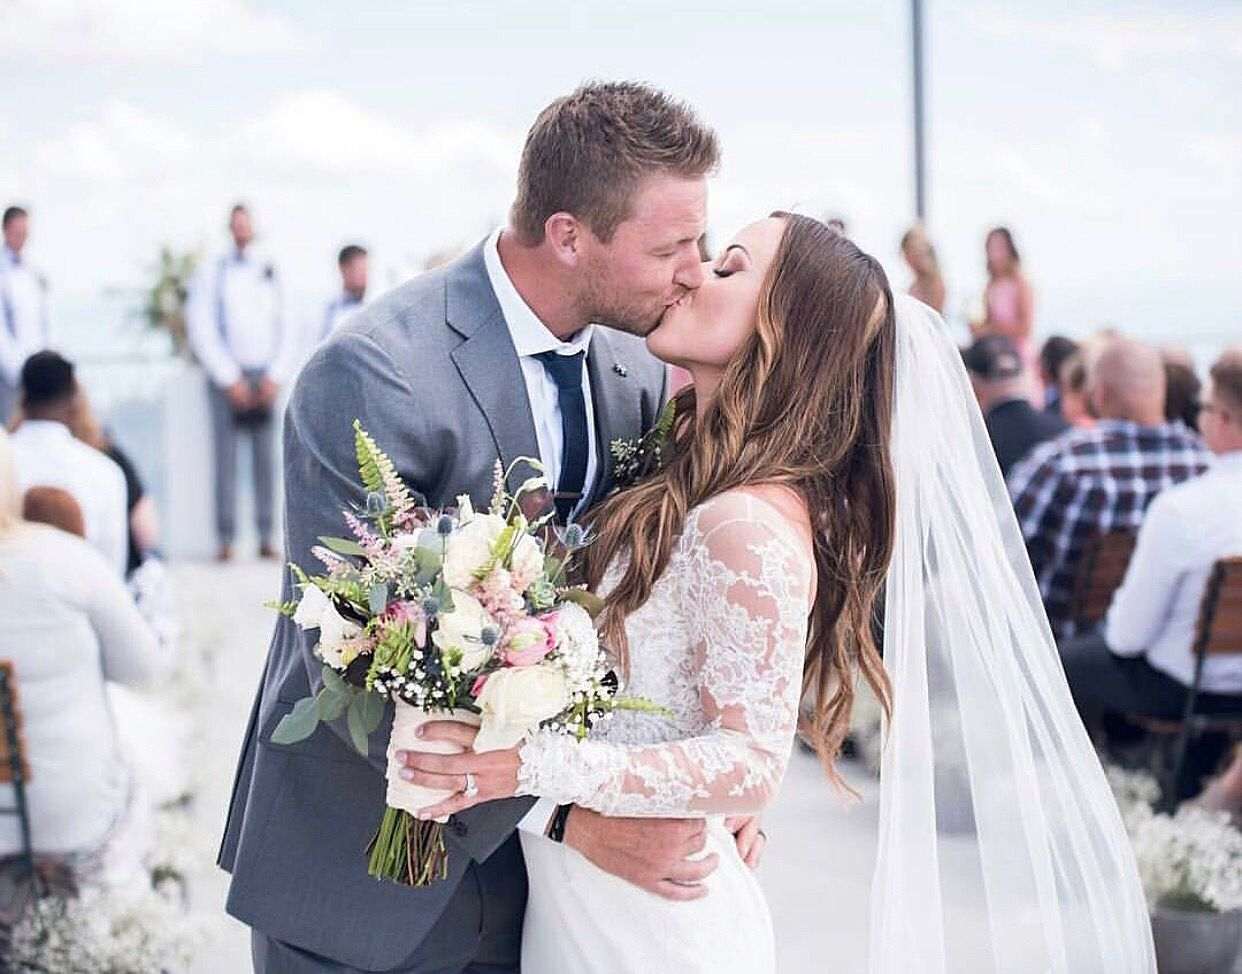 The Kiss | Bride Jessica was married in Utah in the Jonquil wedding ...